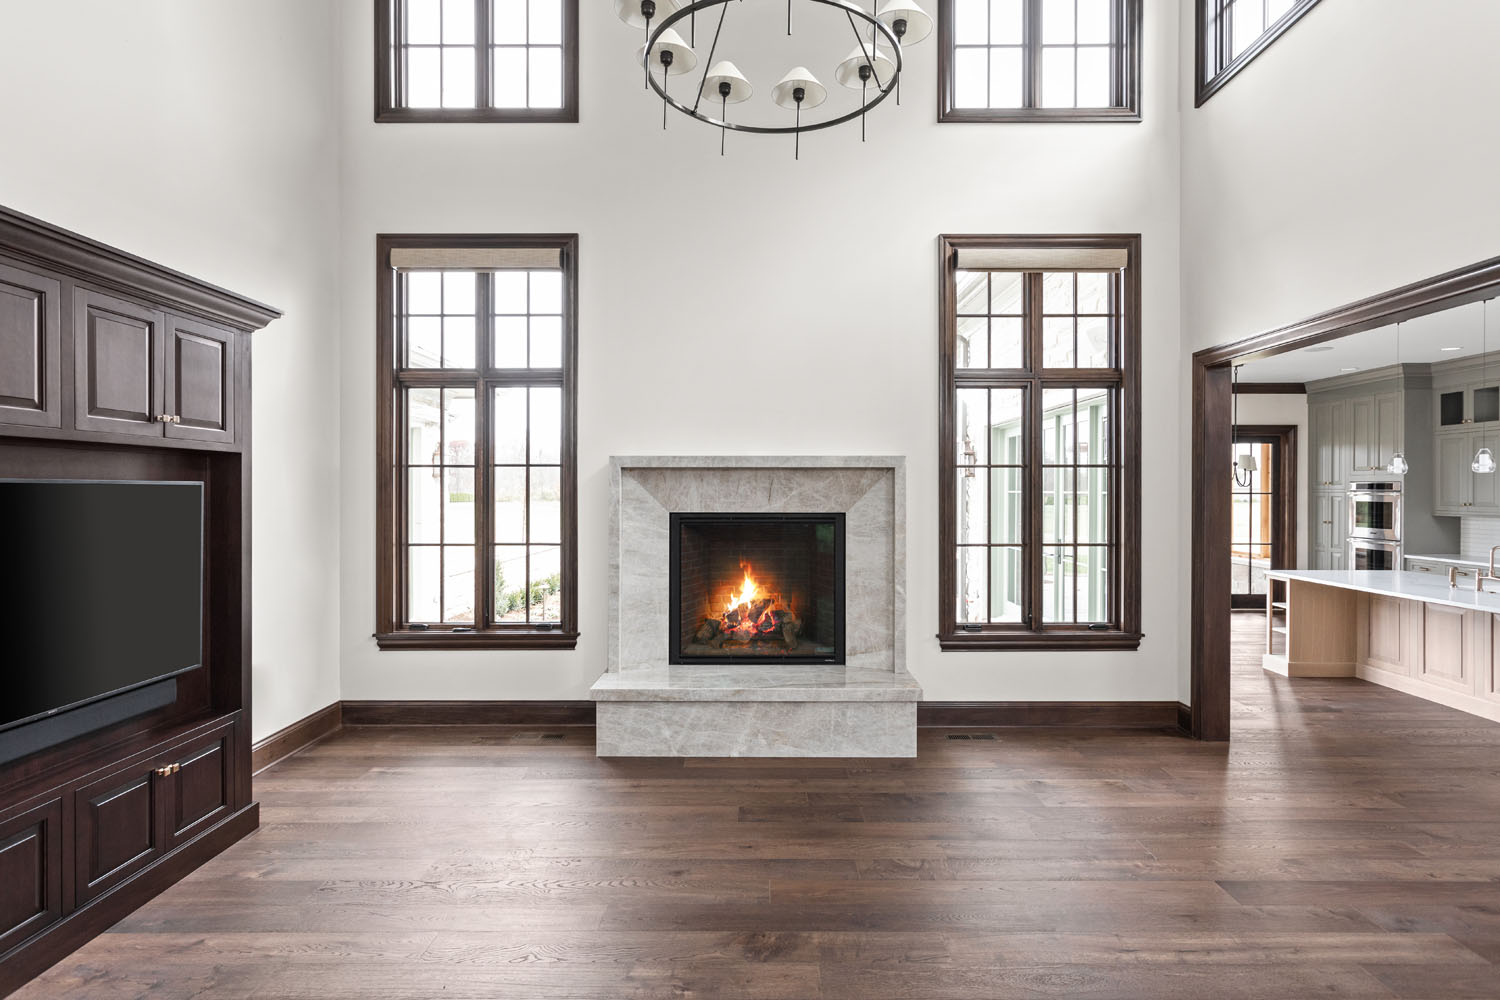 custom kitchen in Indianapolis with dark hardwood floors and high-end stainless appliances